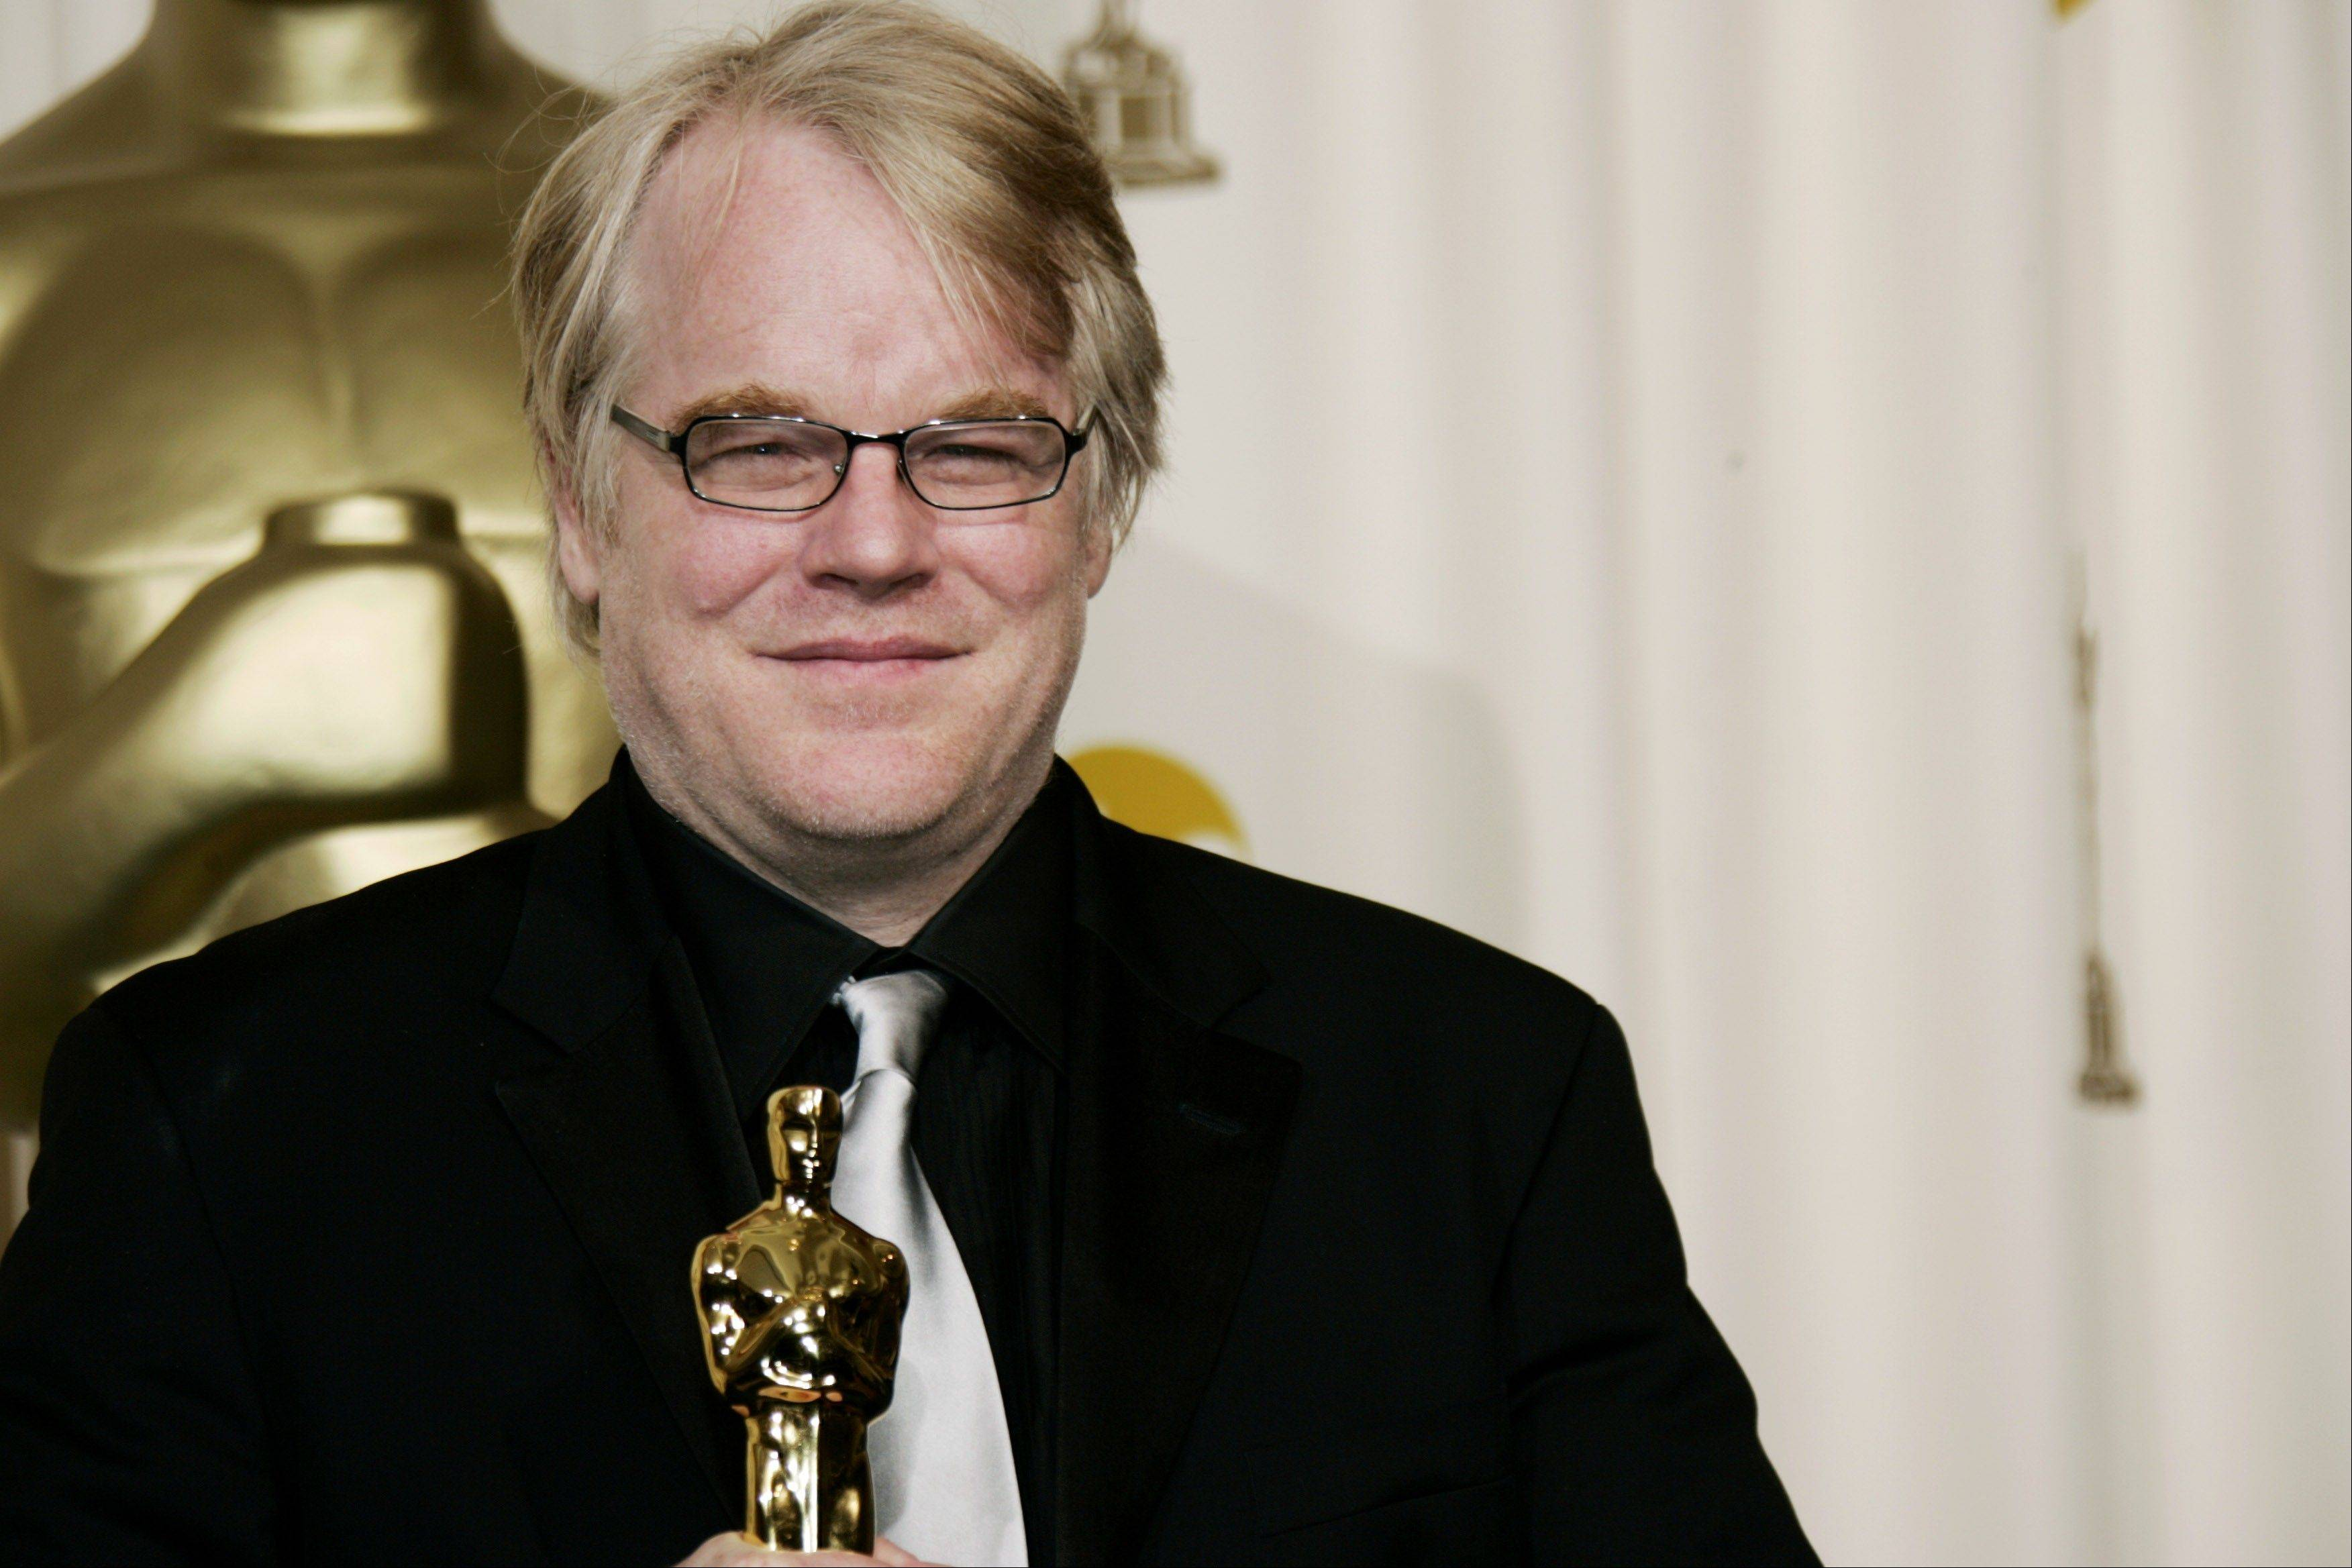 Images: Philip Seymour Hoffman, 1967-2014